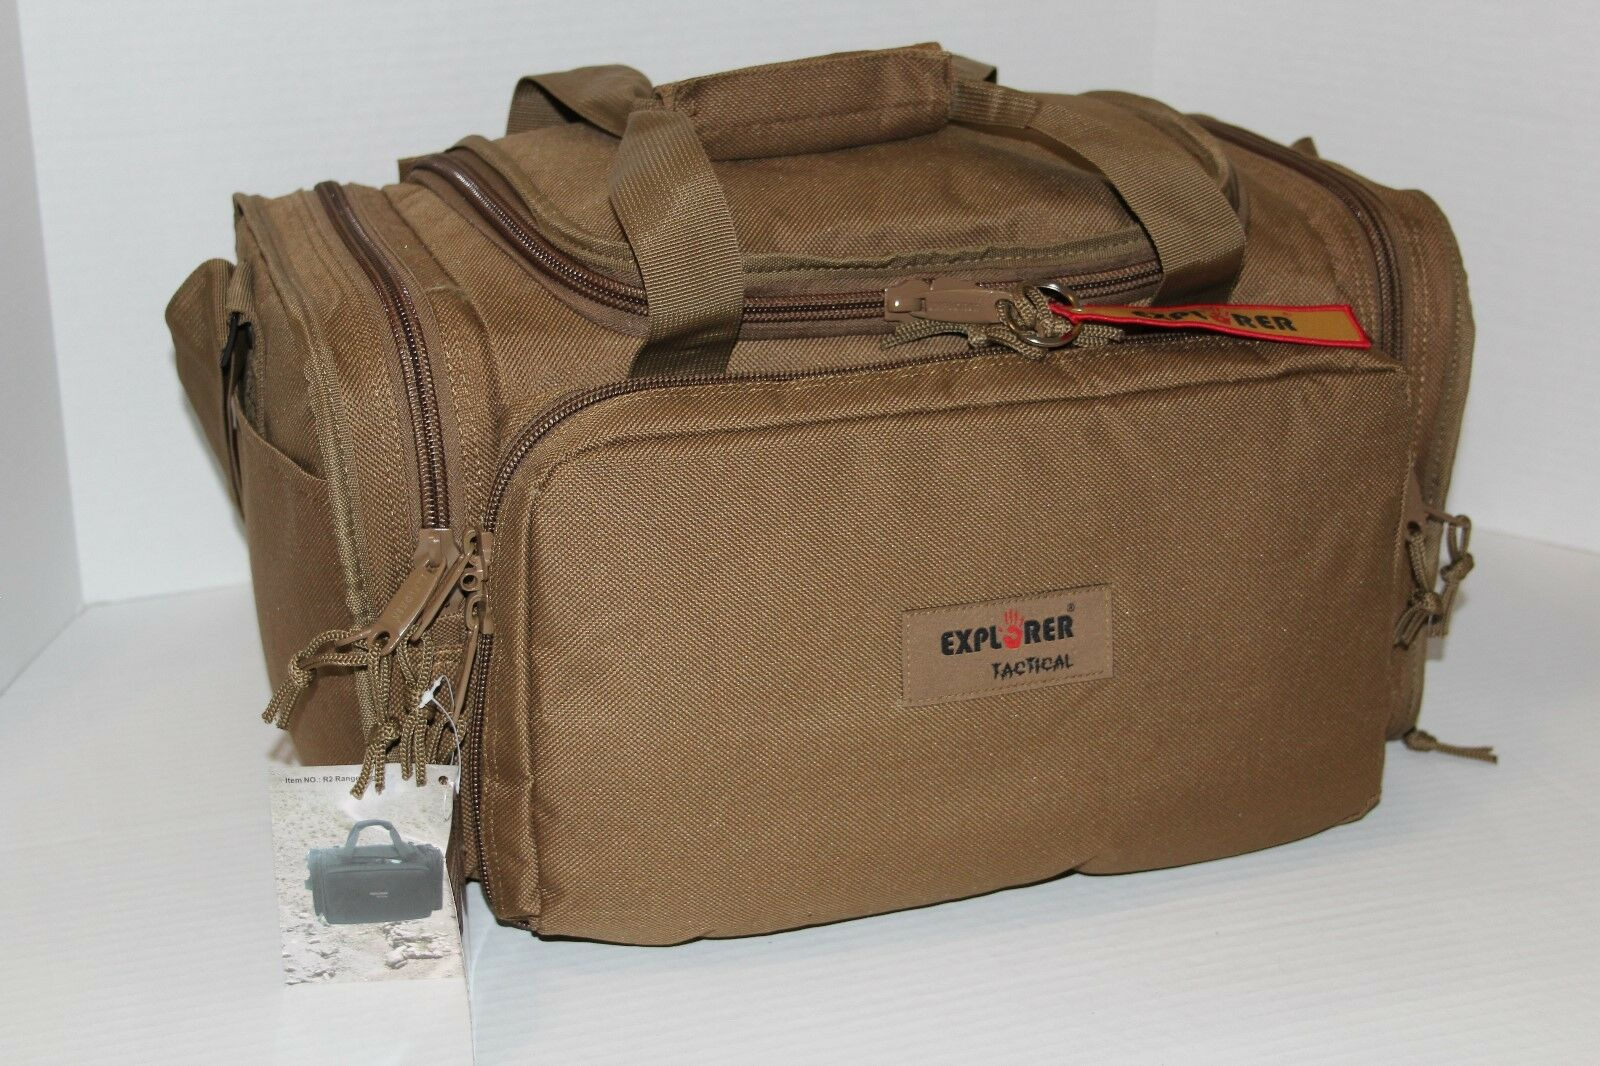 Deluxe Range Bag -Coyote Tan w  FREE Embroidered Monogram Tactical Ammo Bag